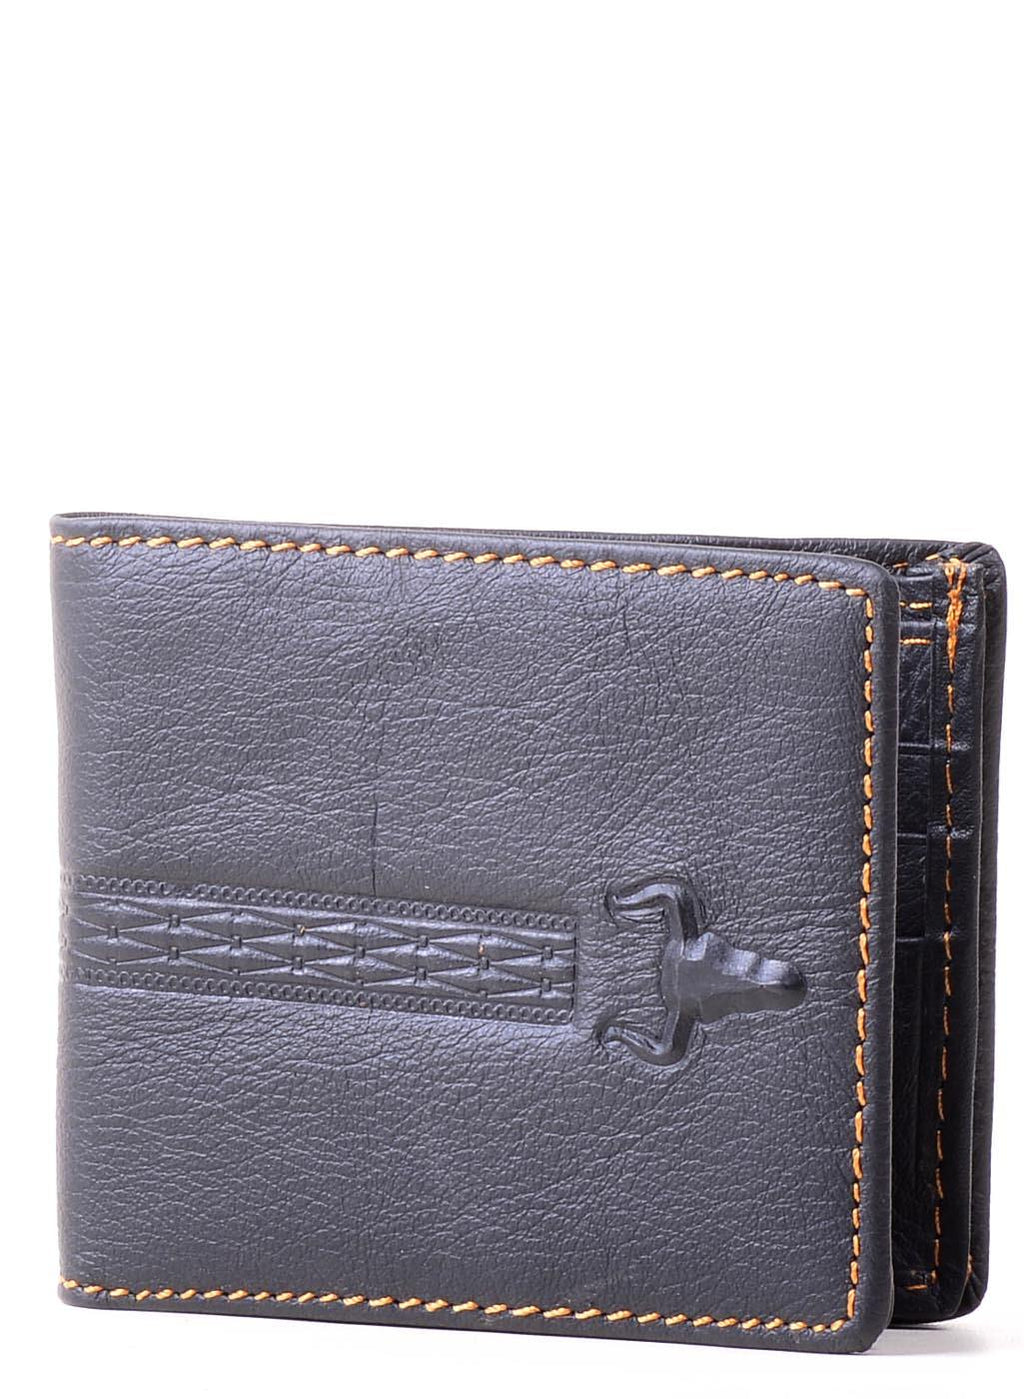 EthniCache Wallet Superb Handmade Pure Leather Wallet